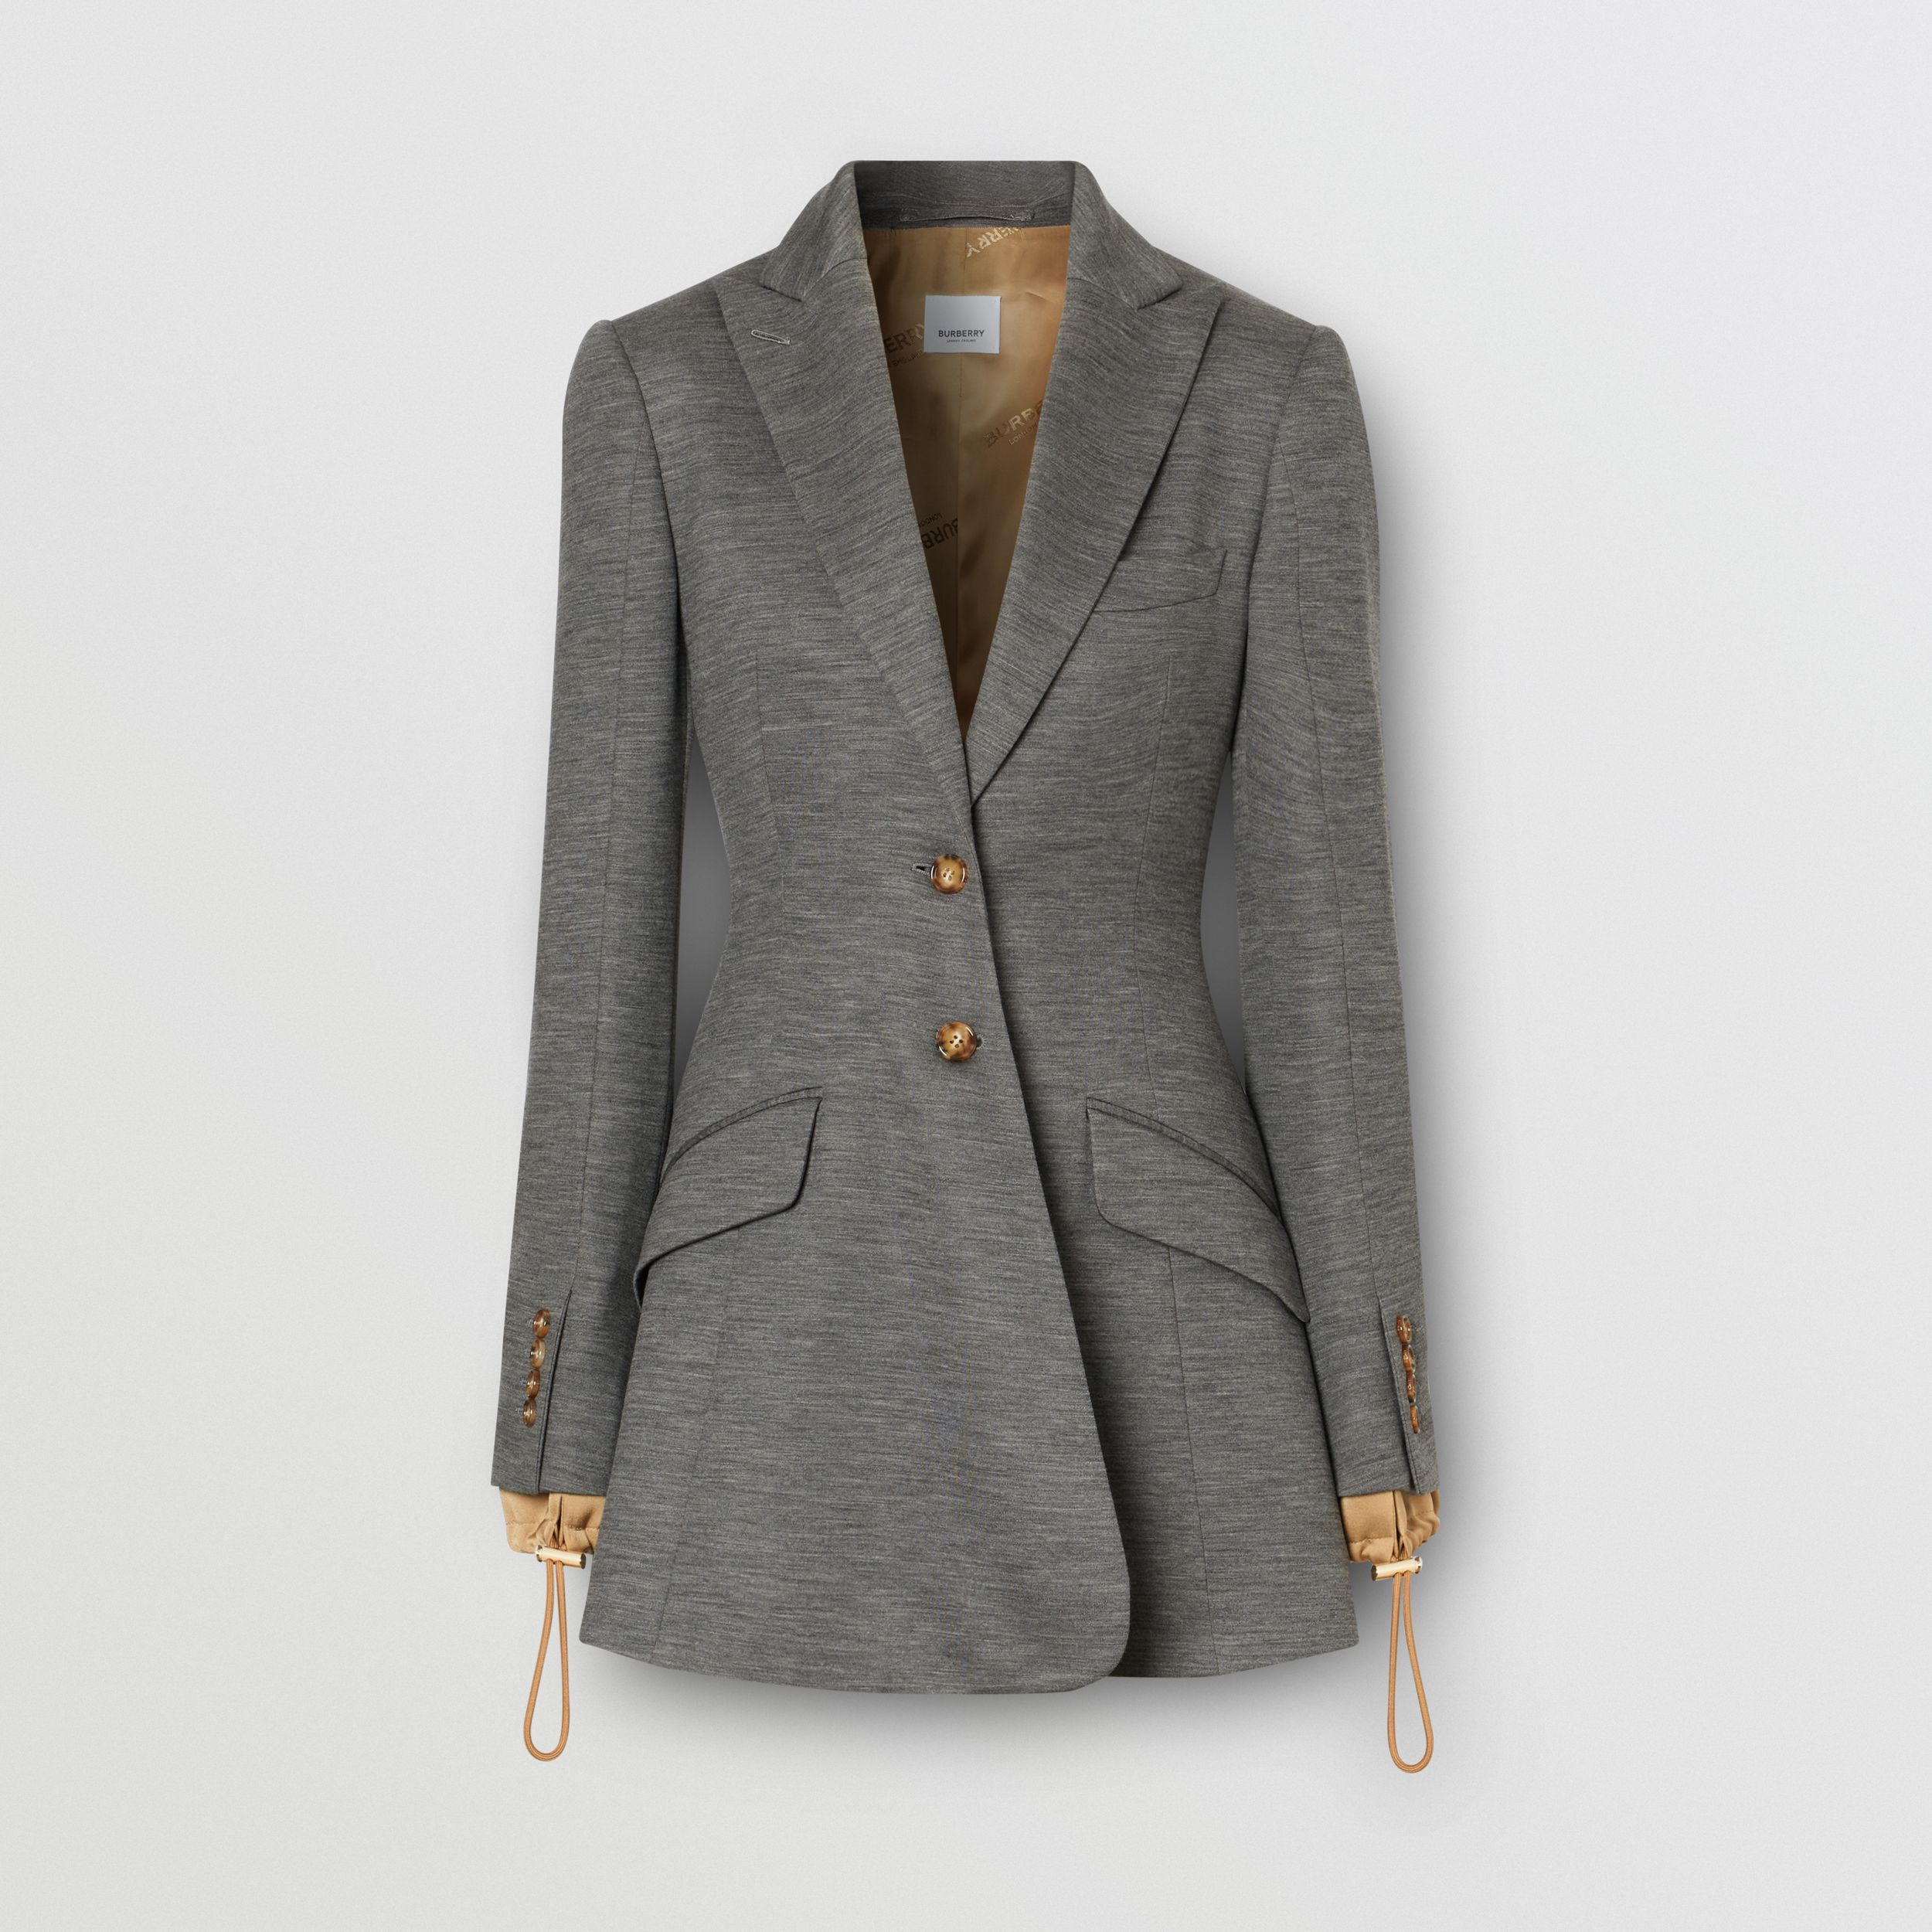 Silk Trim Technical Wool Blazer in Charcoal Grey - Women | Burberry Australia - 4